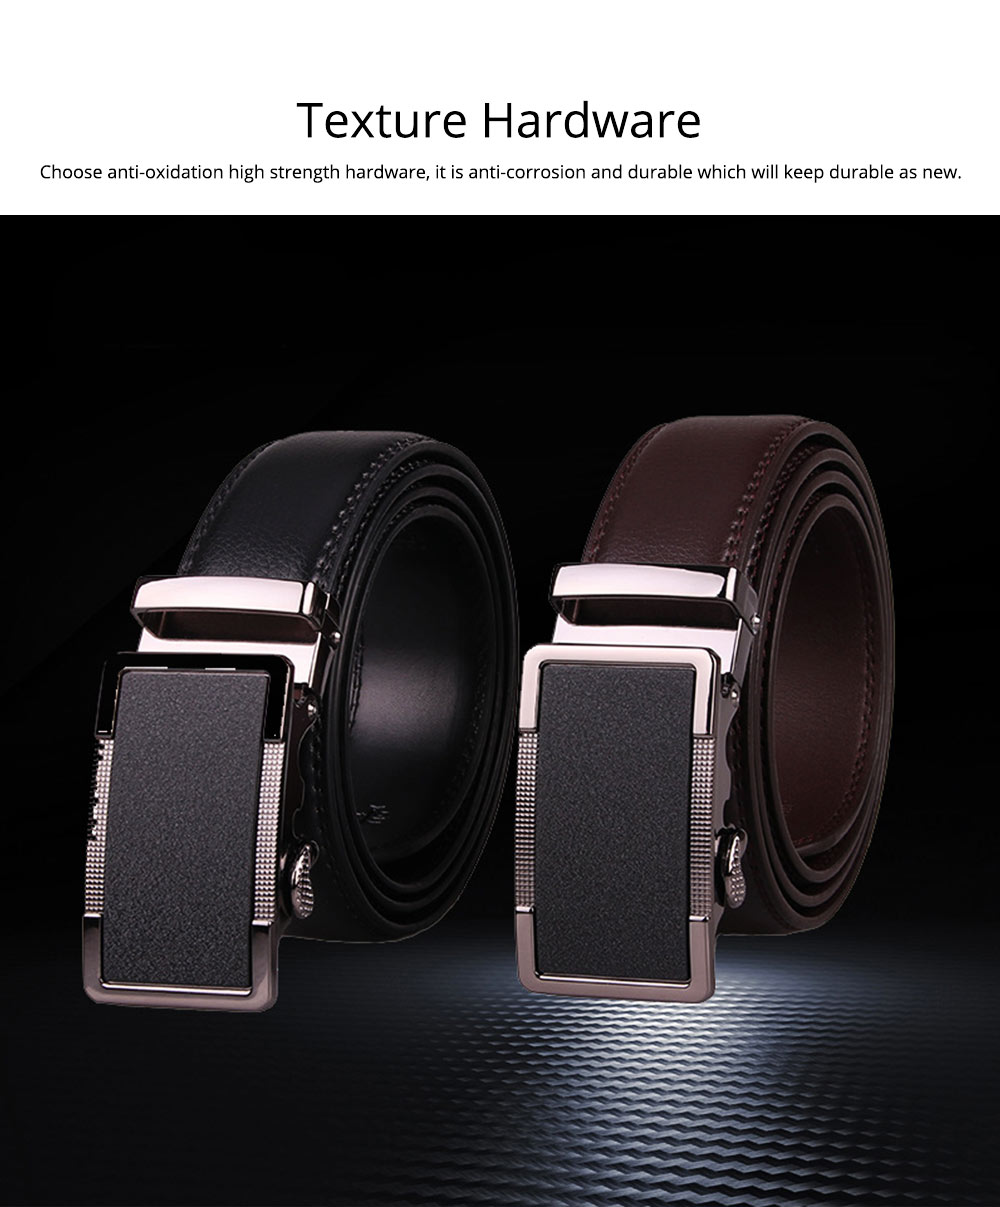 Men' Alloy Automatic Buckle Belt with Stainless Steel Buckle, Second Floor Leather Polished Stone Business Belt 5